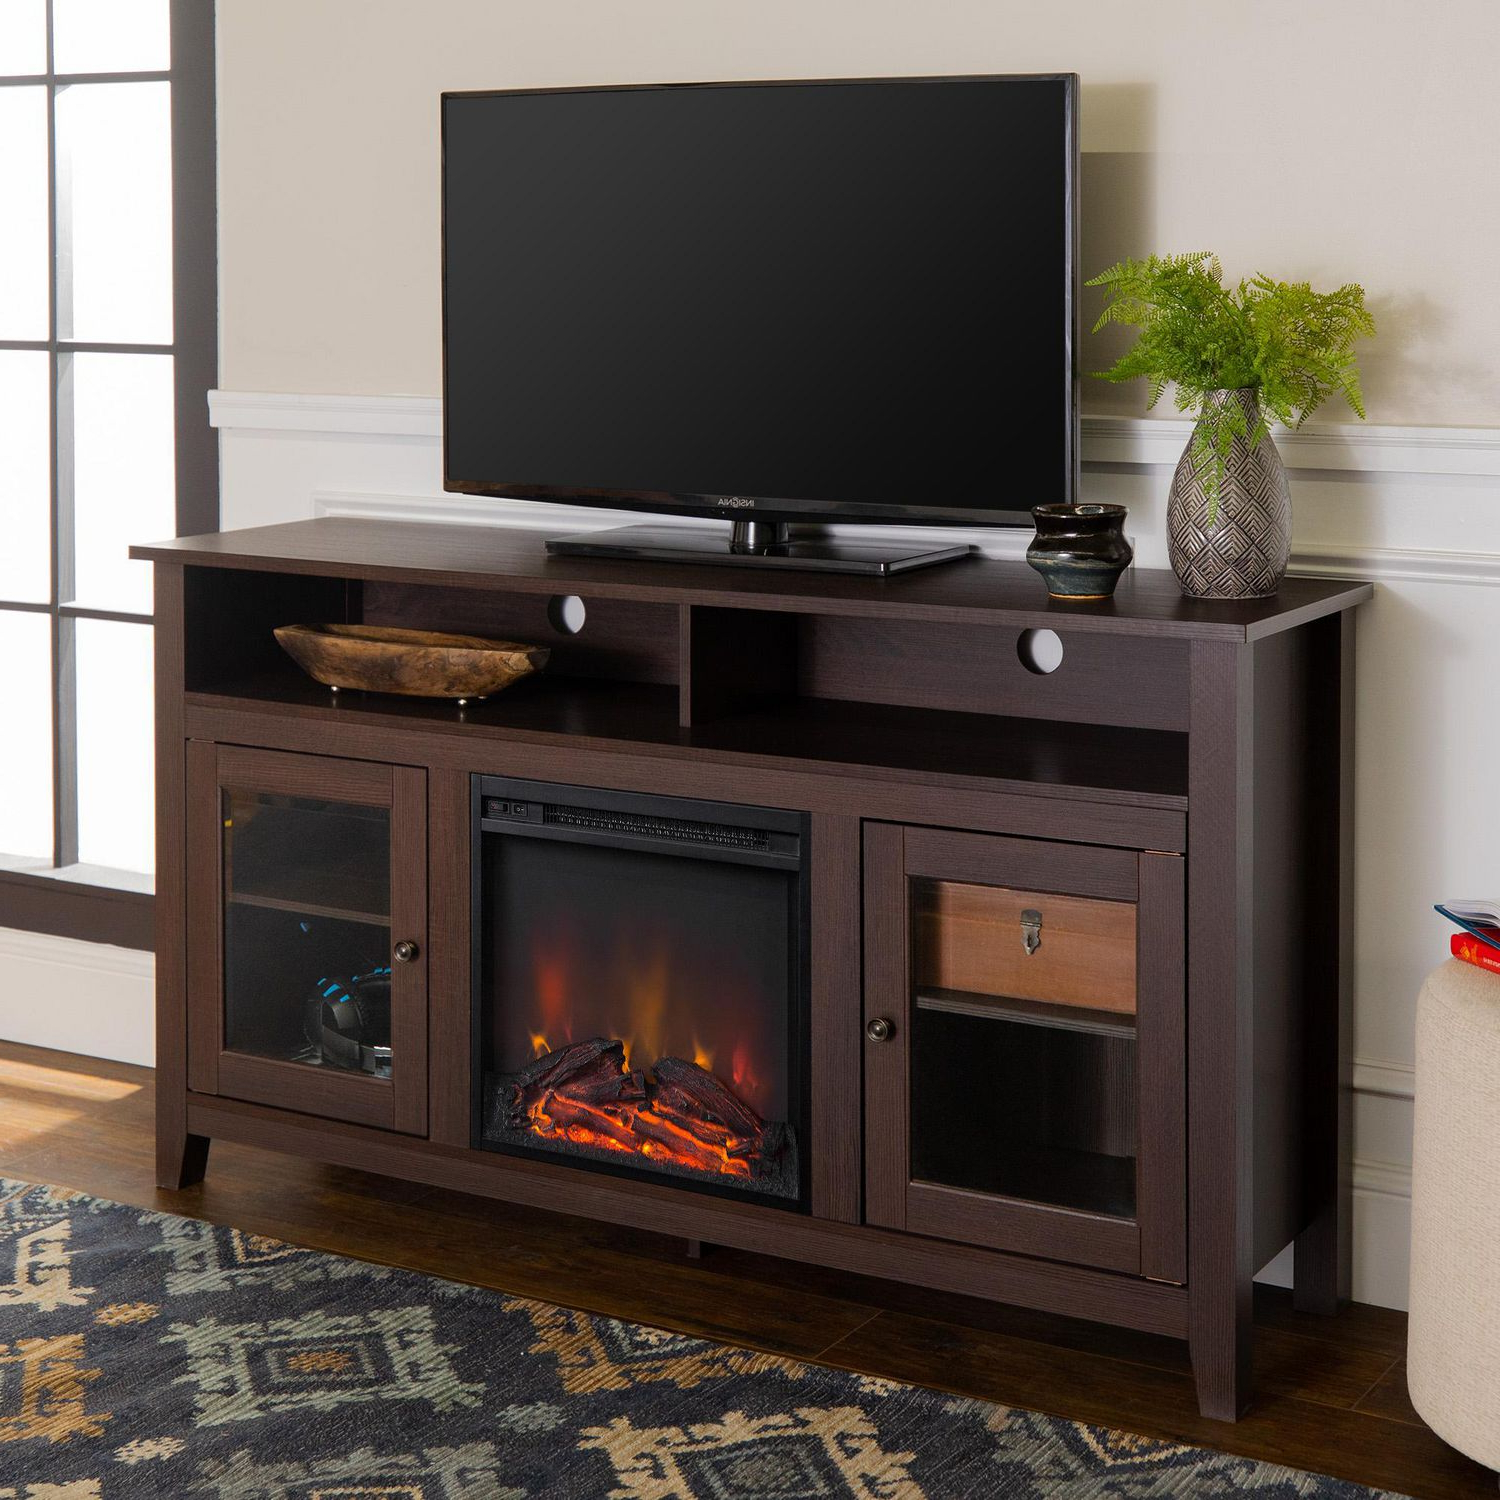 """Leafwood Tv Stands For Tvs Up To 60"""" With Regard To Popular Manor Park Modern Highboy Fireplace Tv Stand For Tvs Up To (View 4 of 20)"""